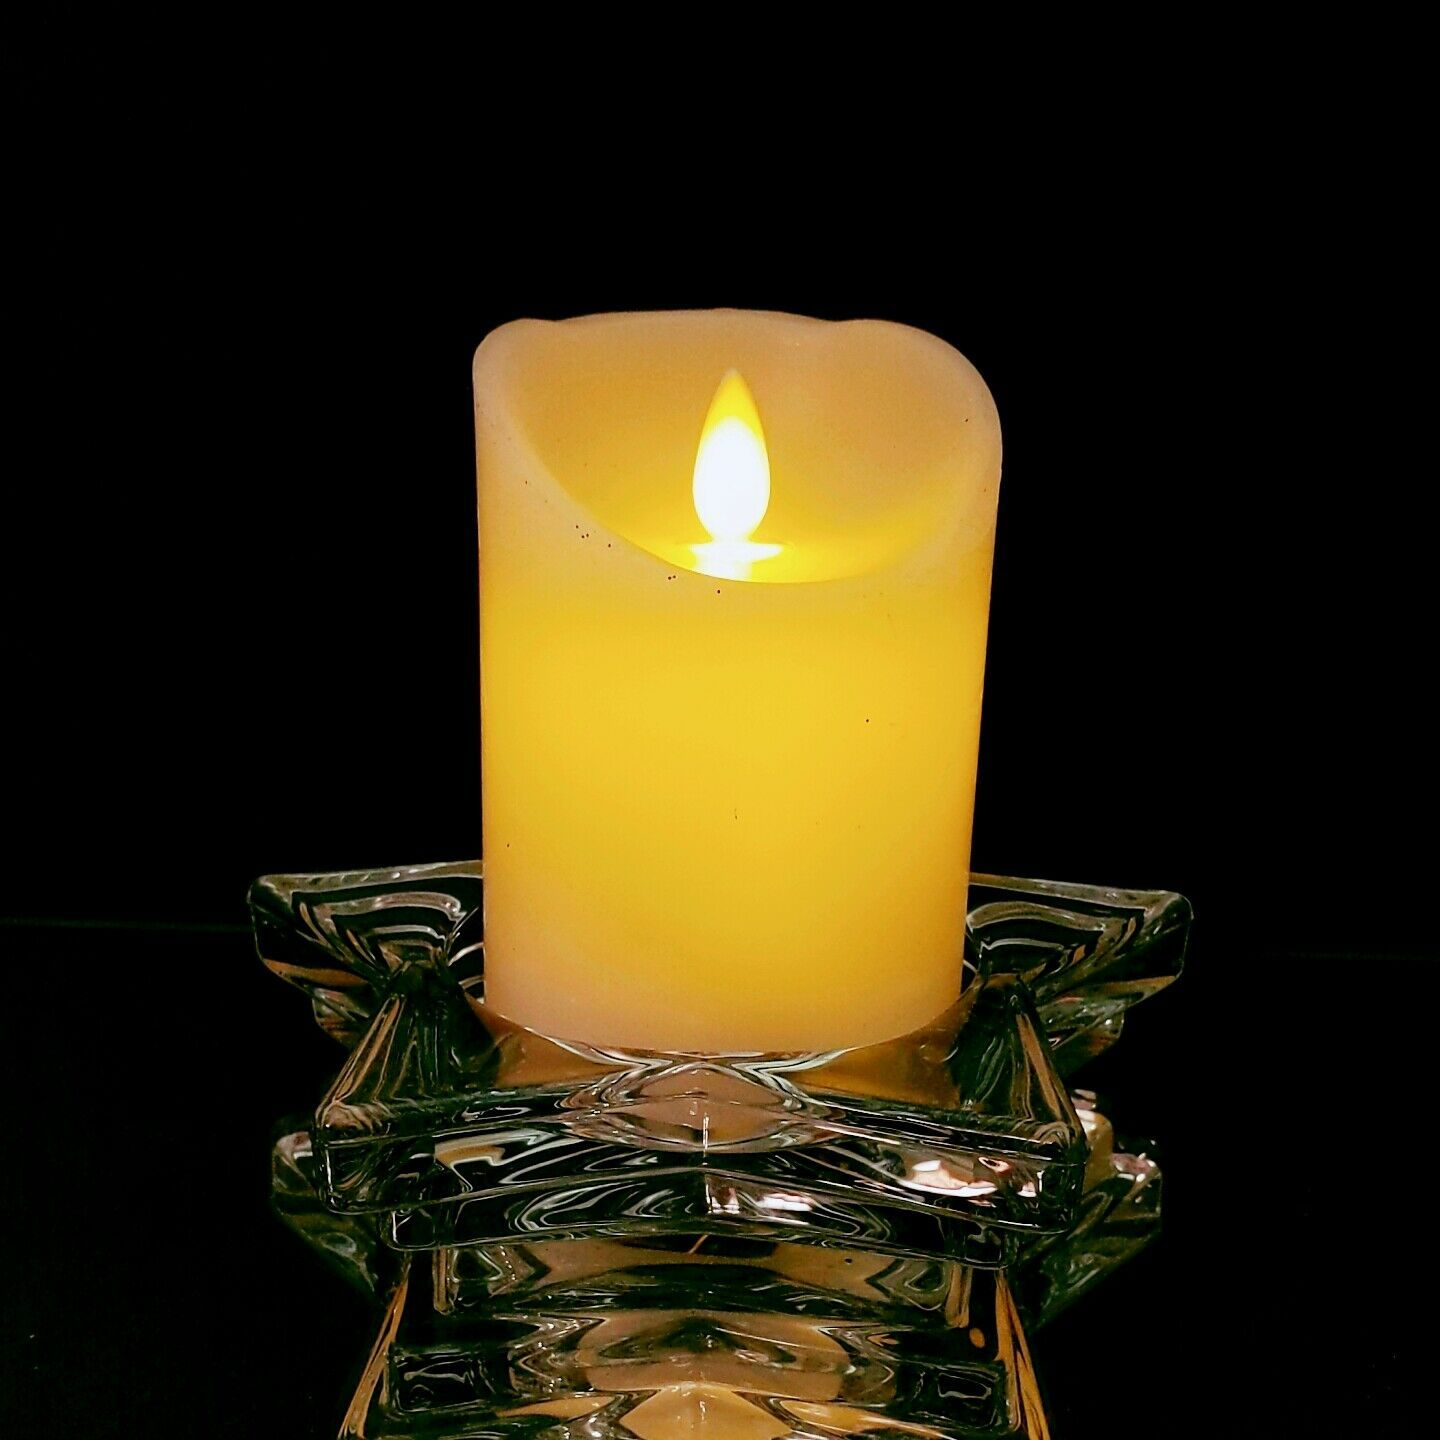 2 (Two) HOME INTERIORS Lead Crystal Pentacle Star Candle Base image 7